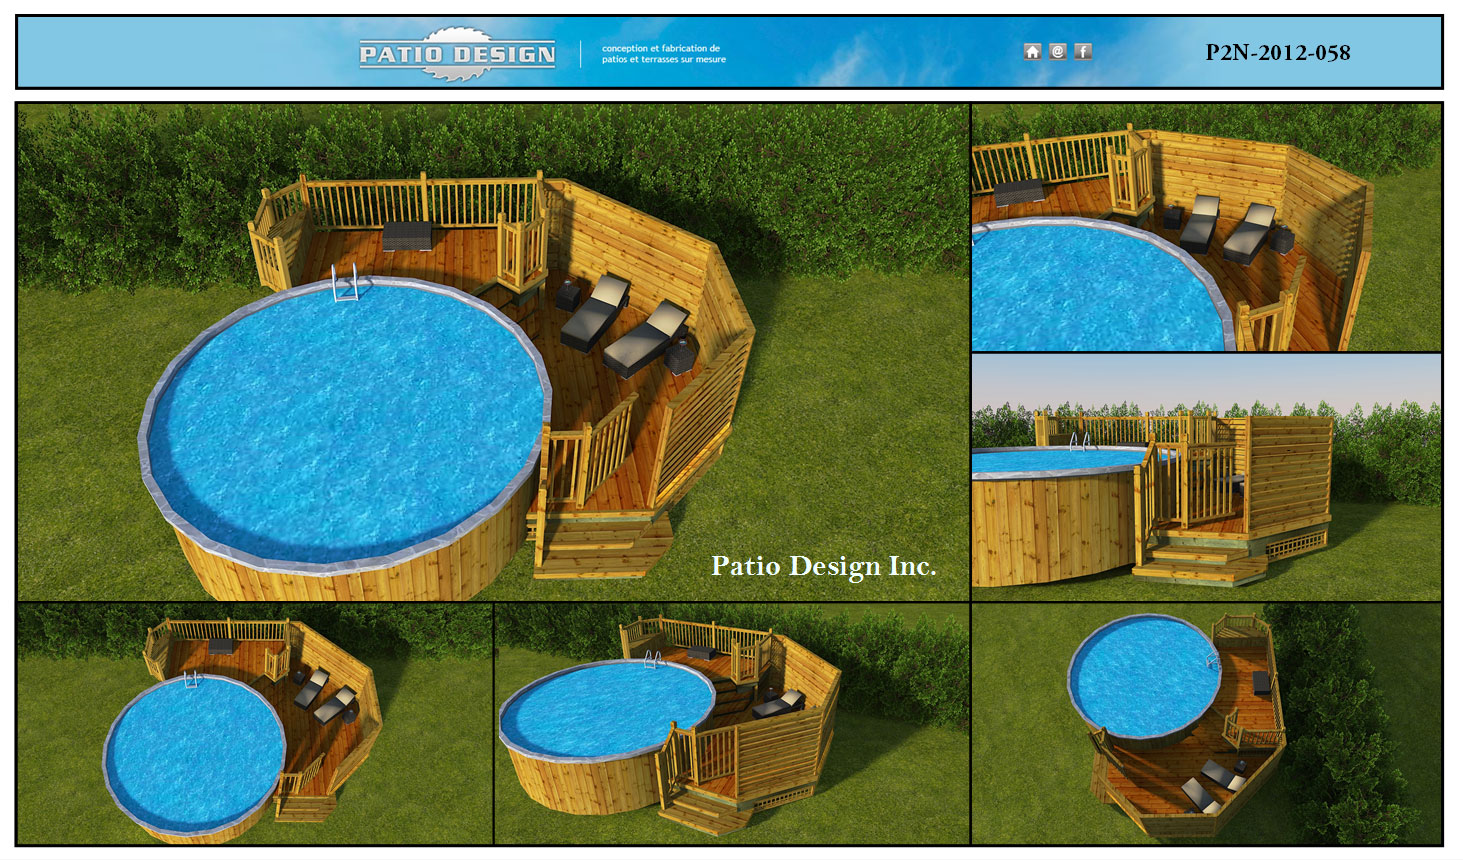 Plan 3d patio design inc for Plan pour patio exterieur gratuit